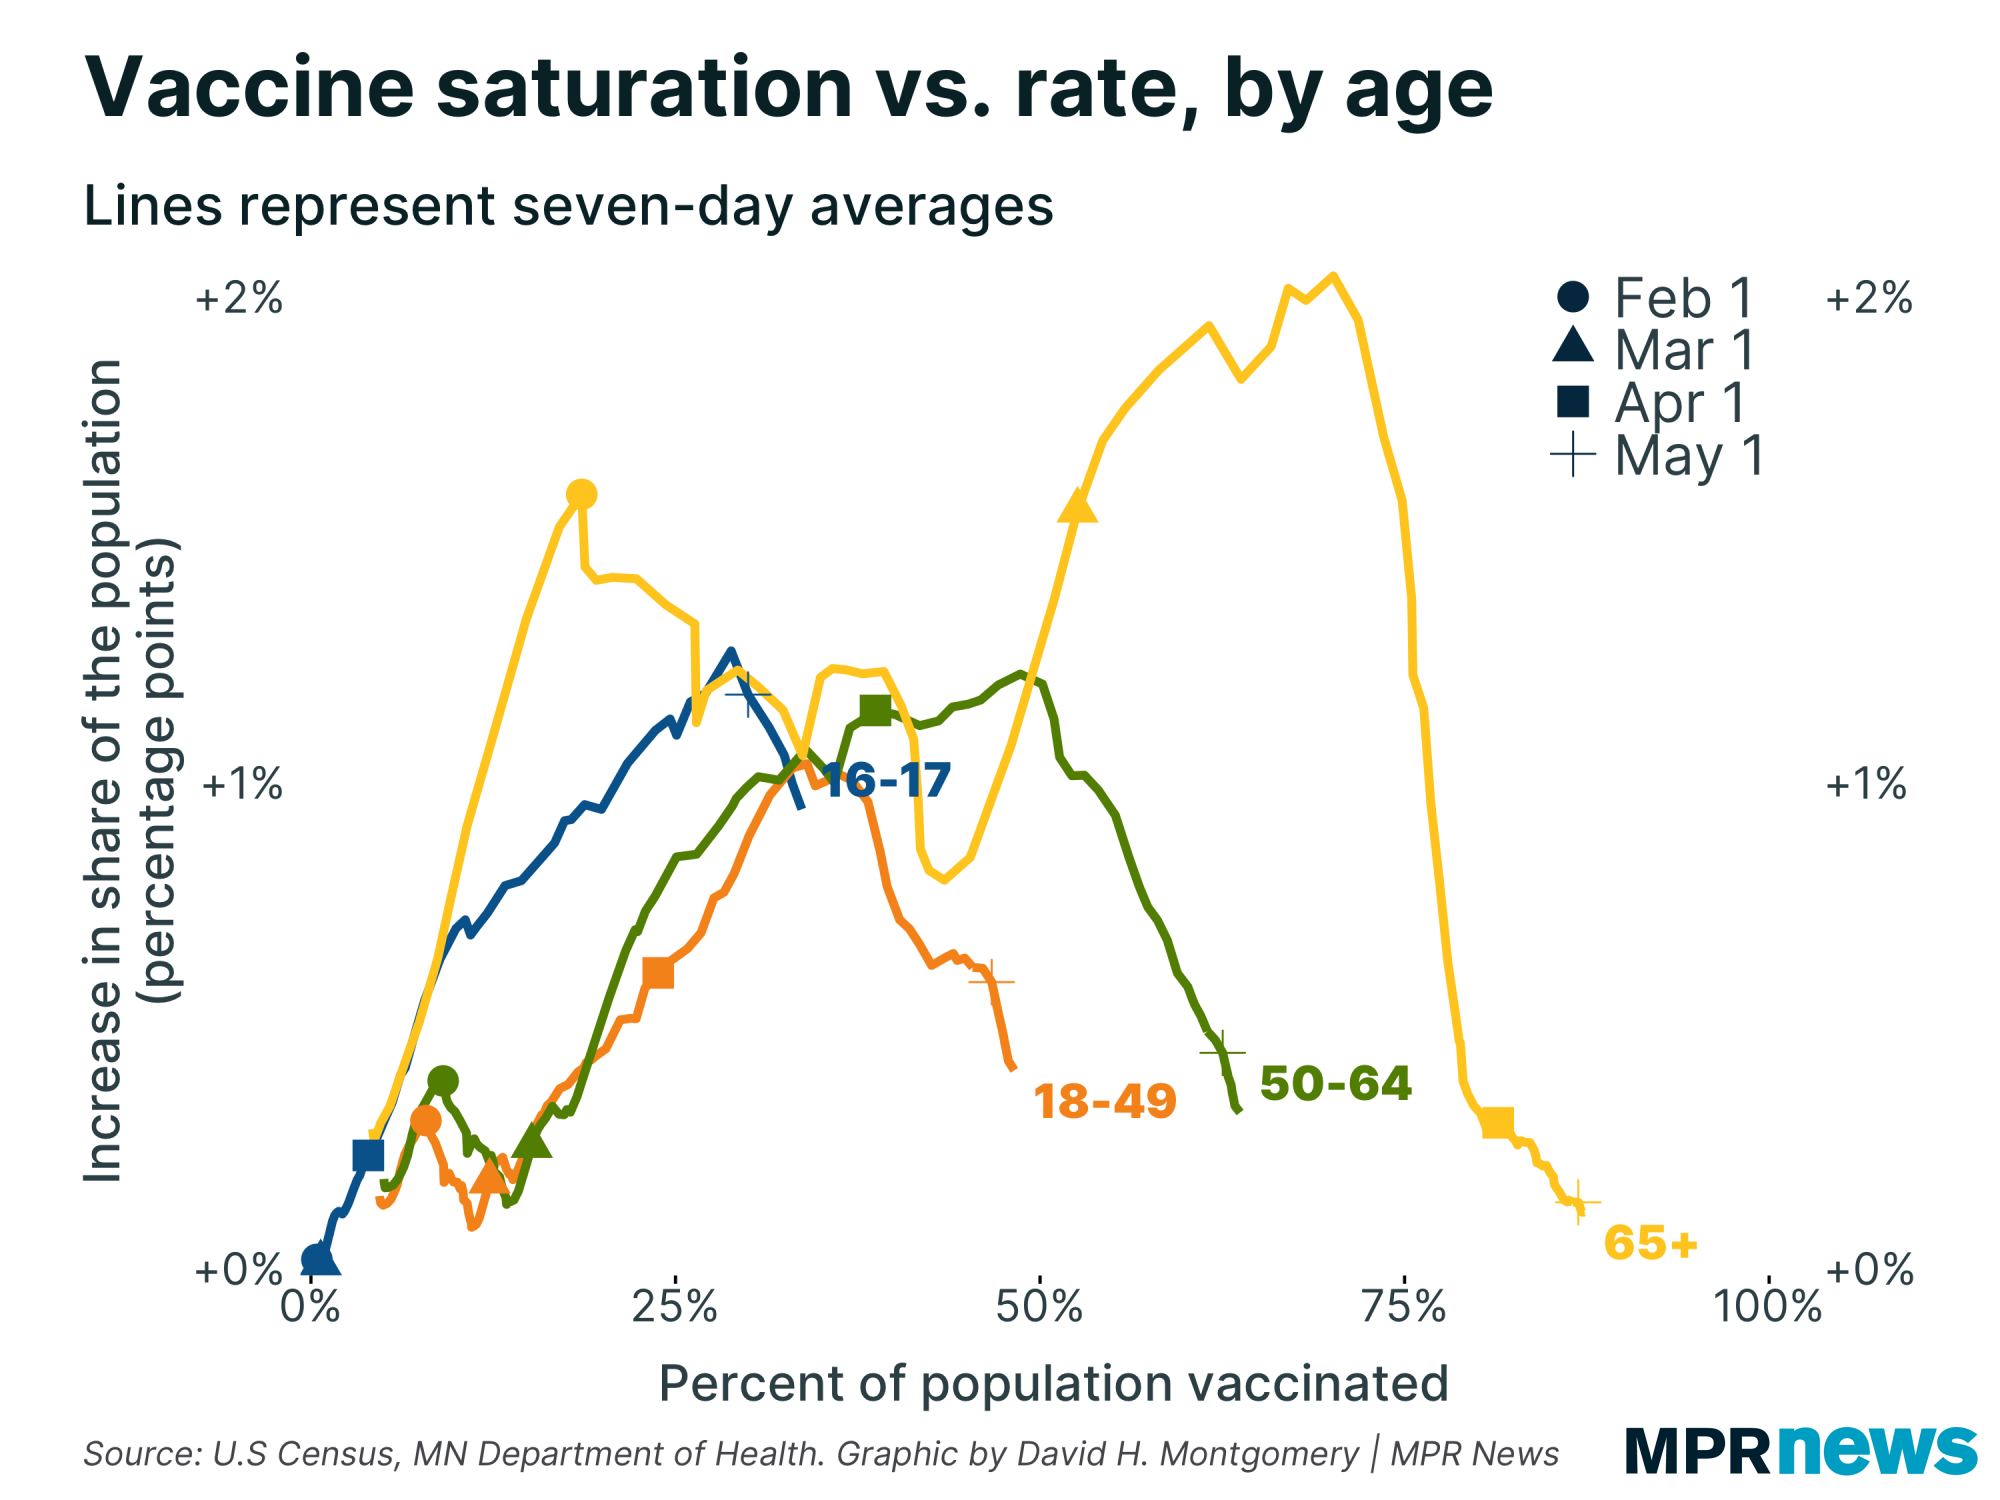 Increase in COVID-19 vaccination rates vs. percent of population vaccinated, by age group